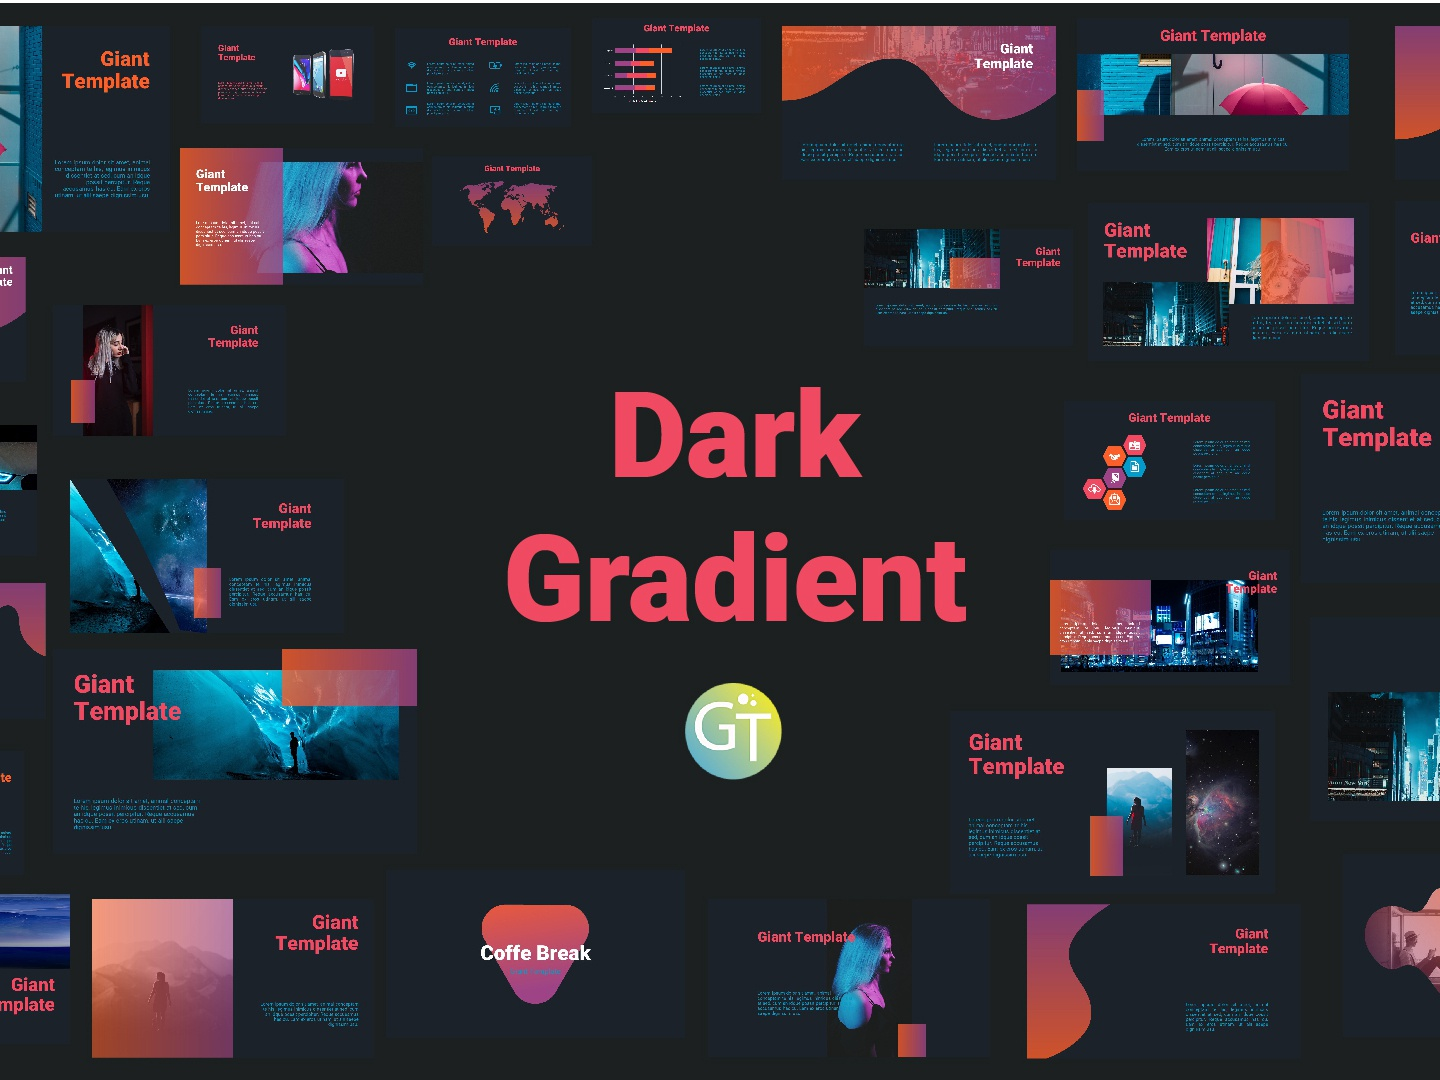 Dark Gradient Free Powerpoint Download Template By Giant